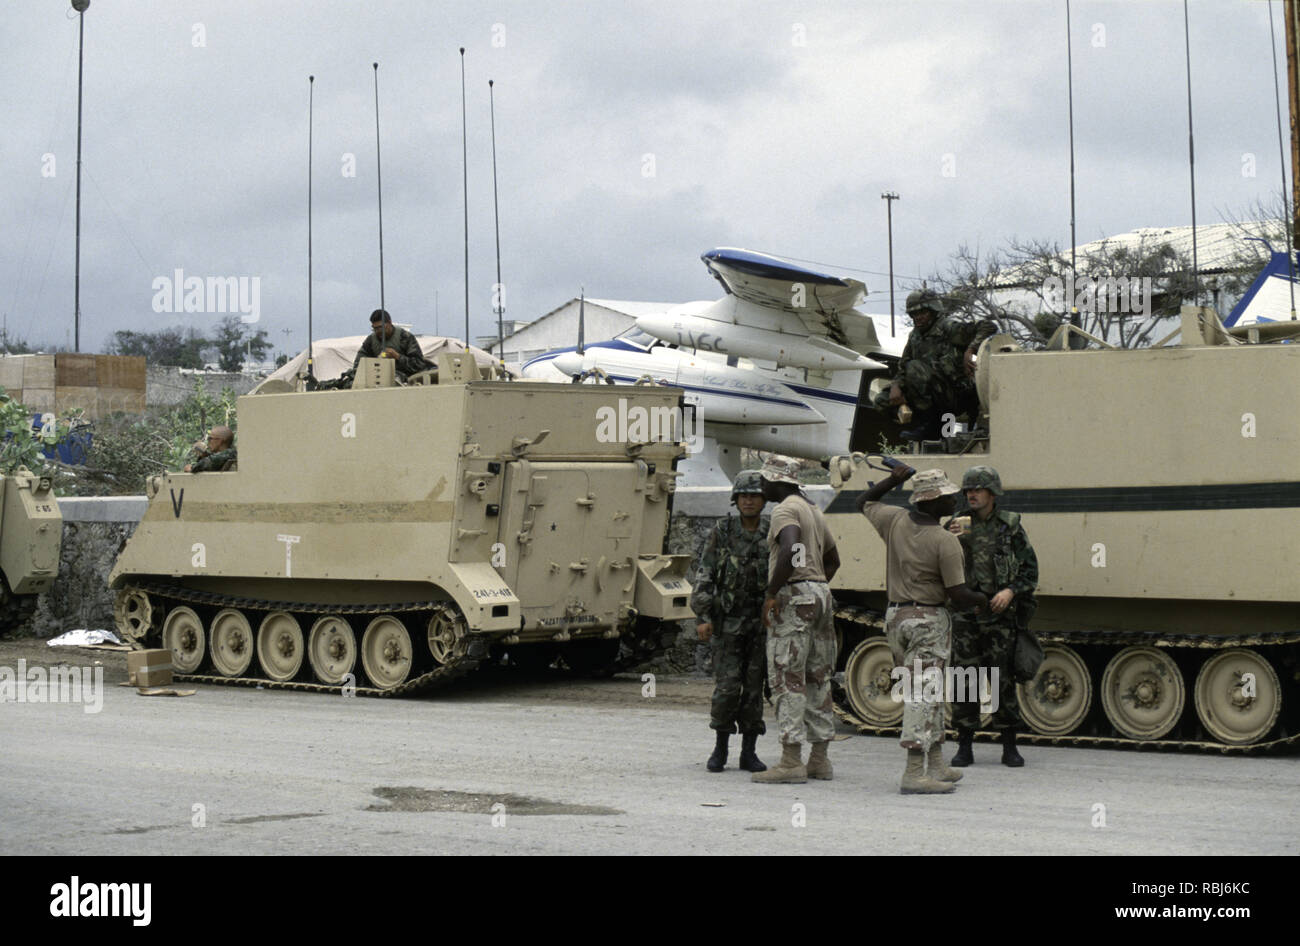 10th October 1993 U.S. Army soldiers stand next to their M577A1 Bradley command post armoured vehicles. They have just arrived at Mogadishu Airport in Somalia. Stock Photo